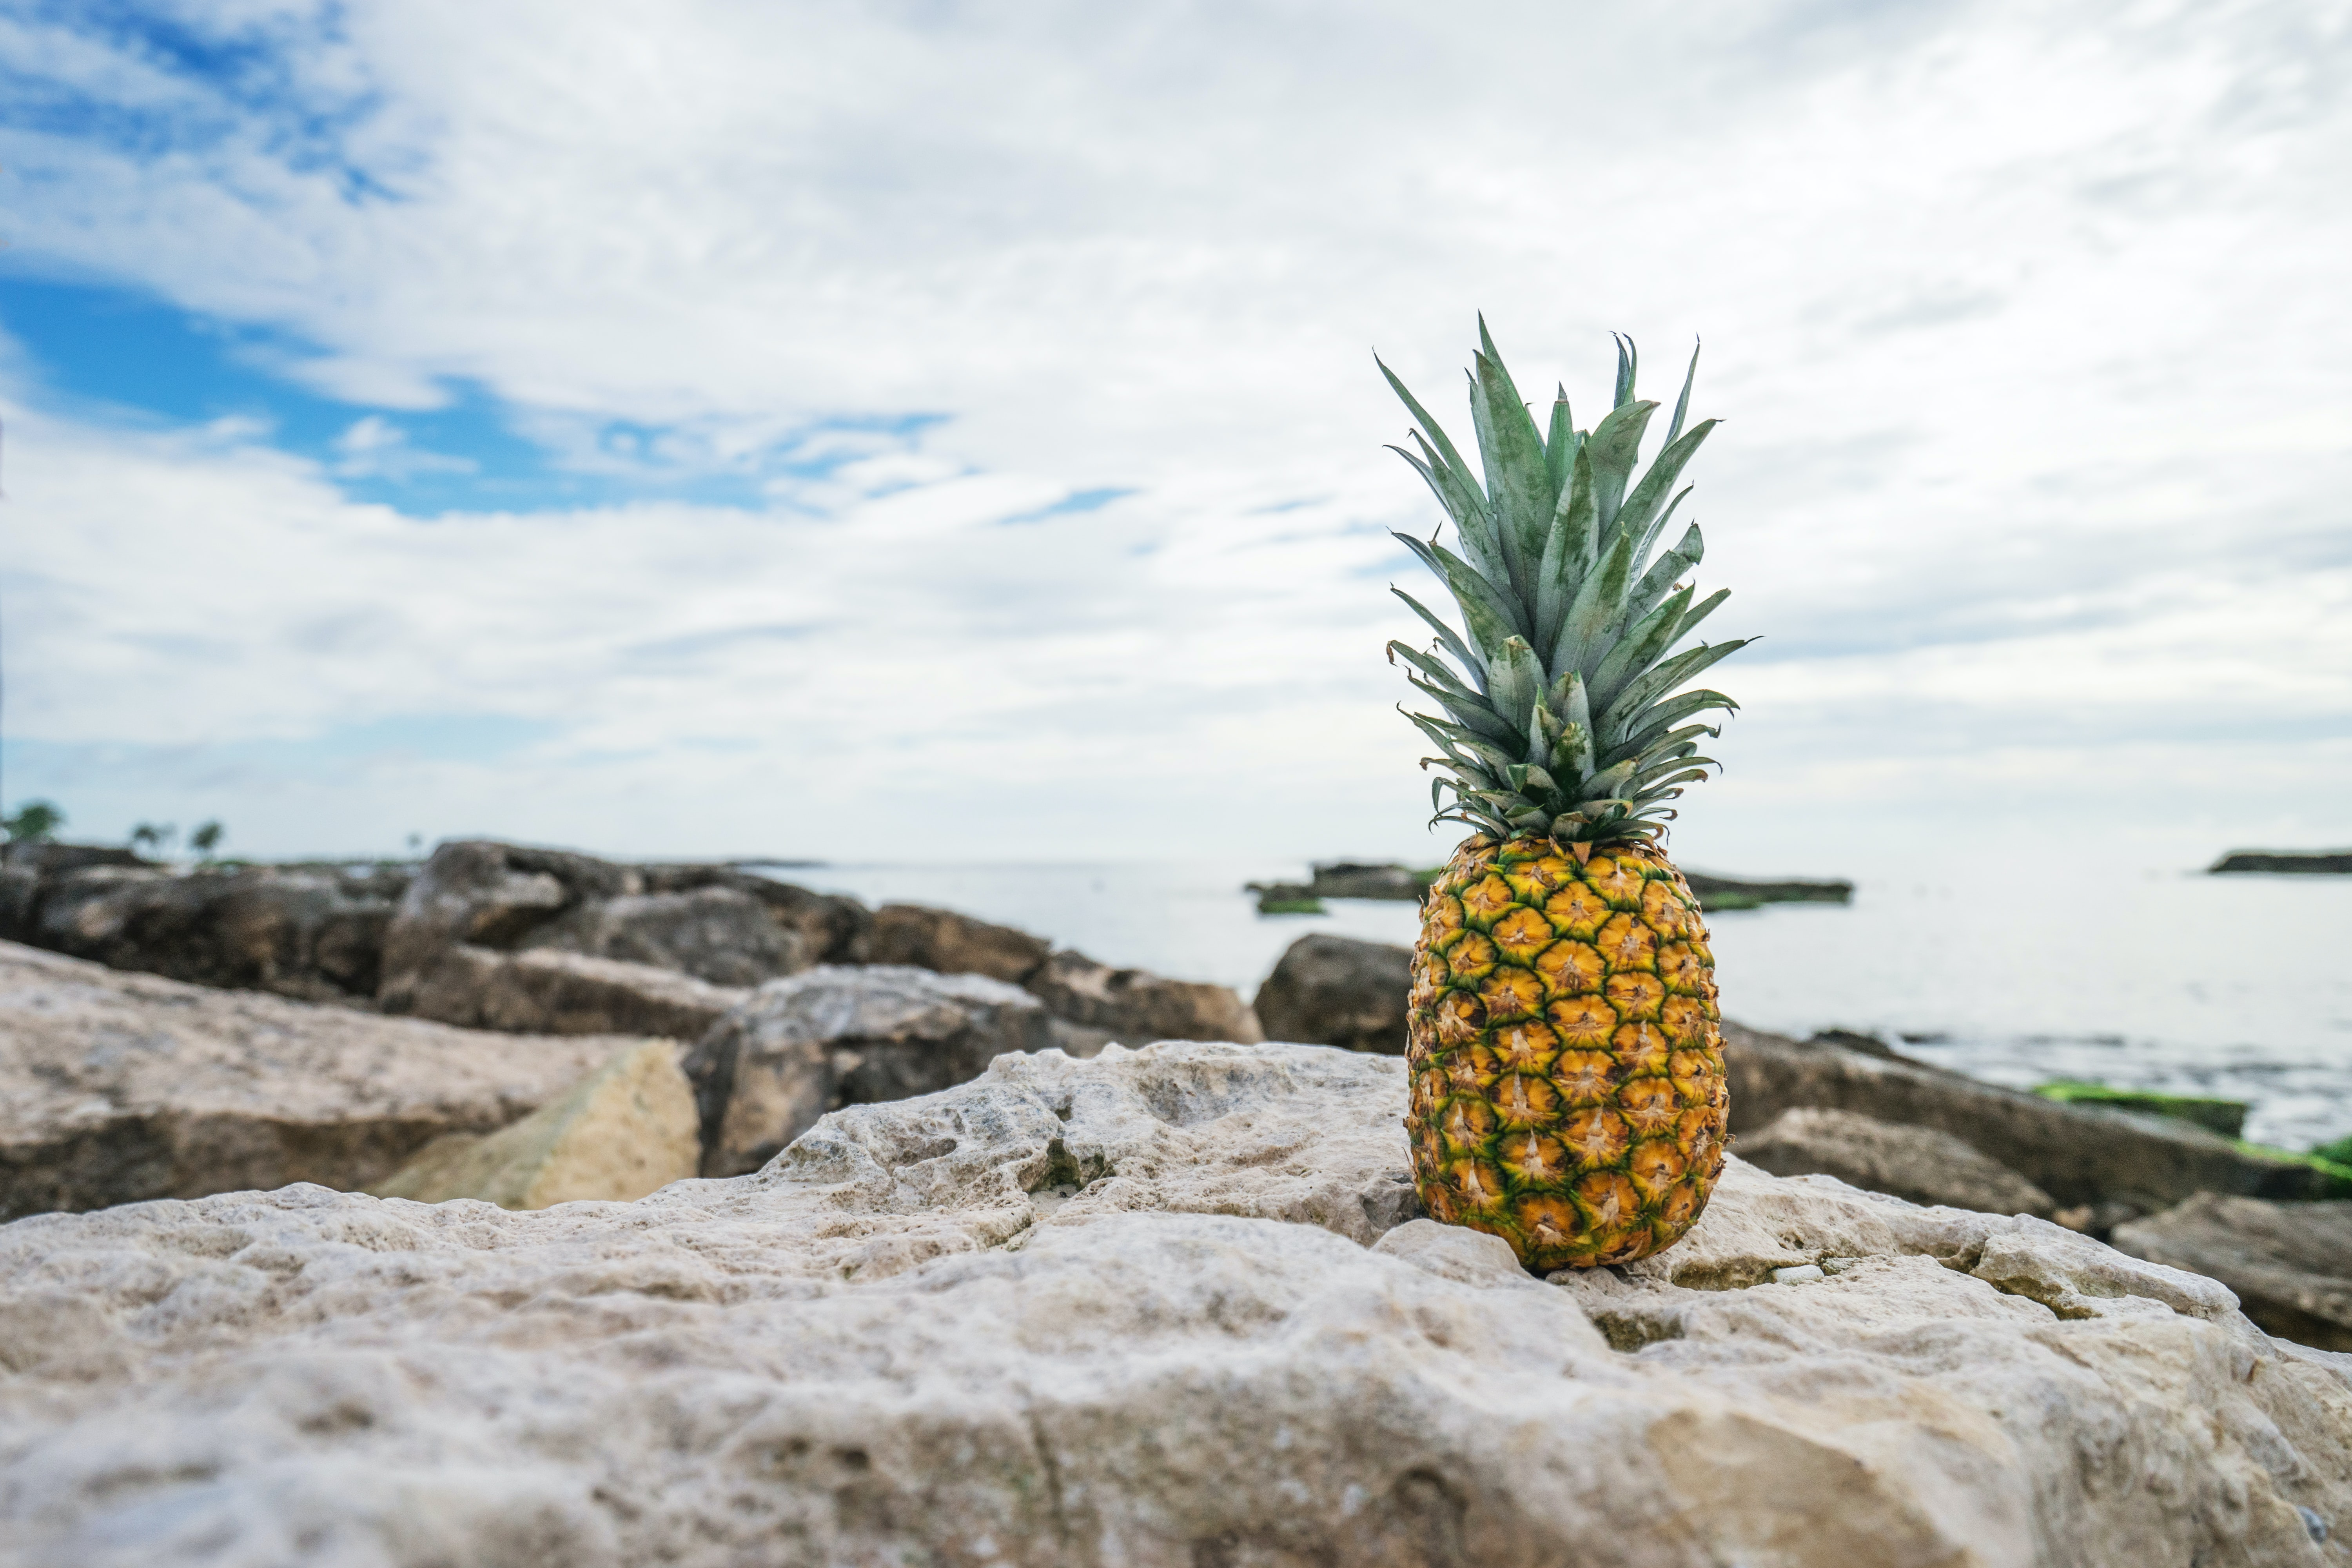 A pineapple sitting on a rock at the beach.